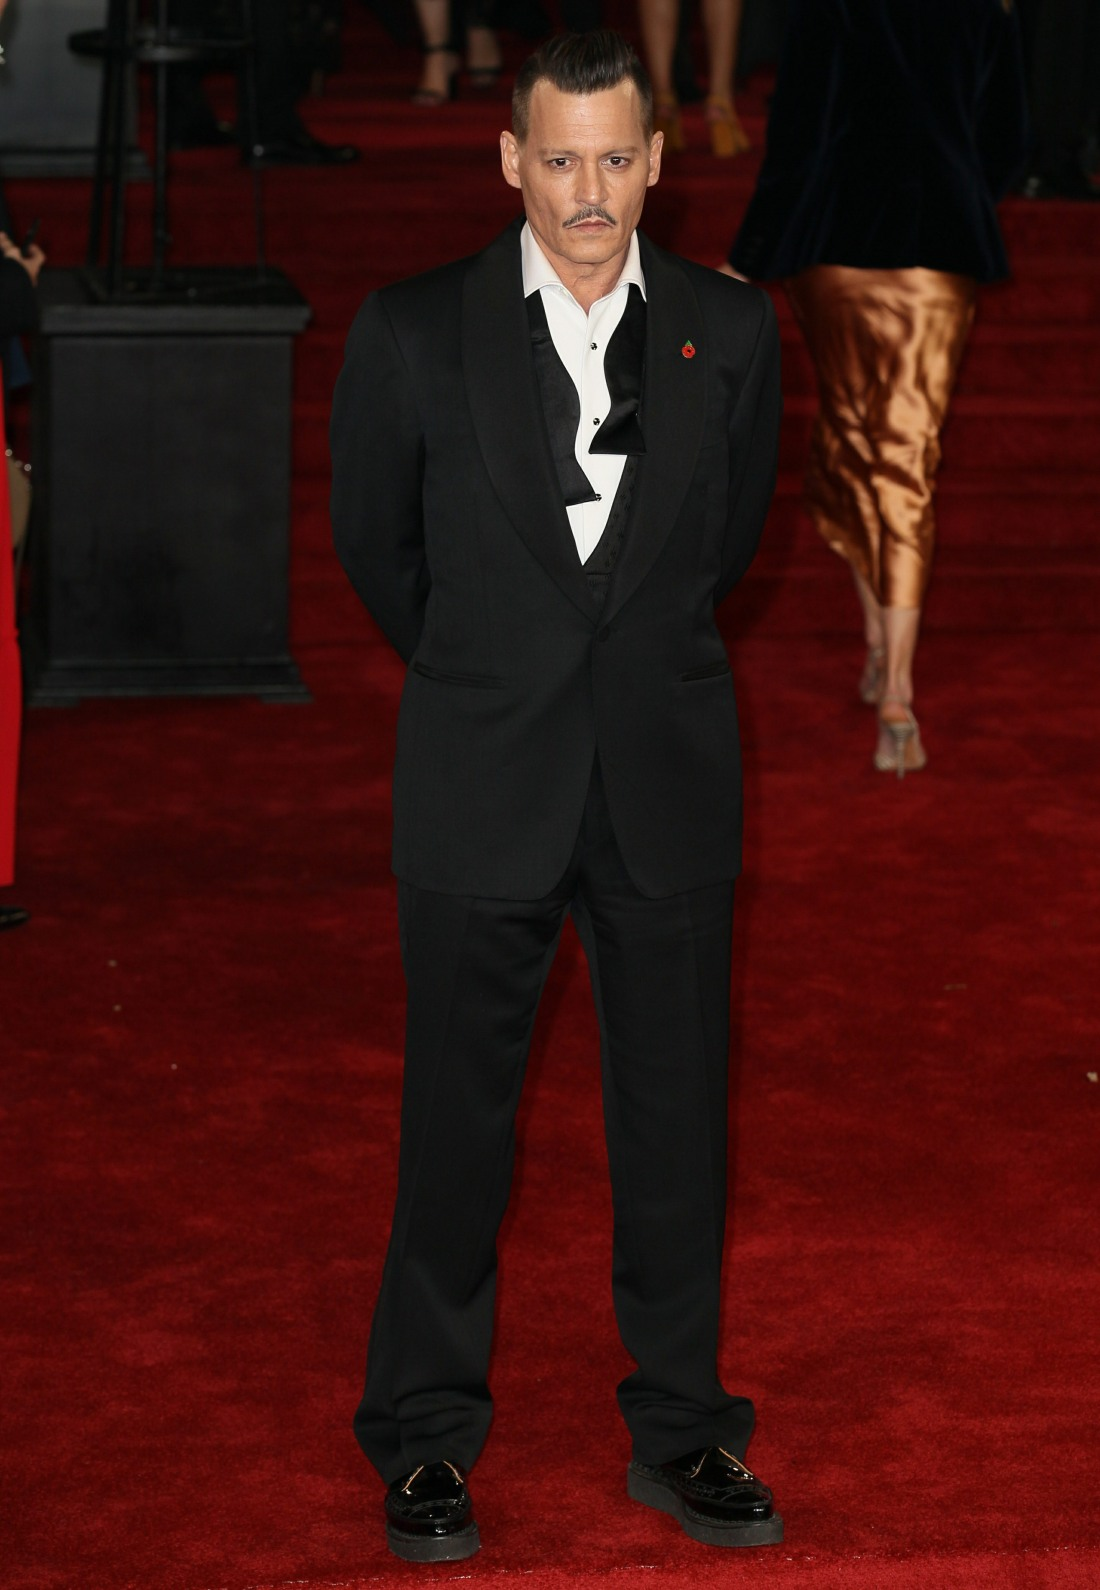 The World Premiere of 'Murder On The Orient Express' held at the Royal Albert Hall